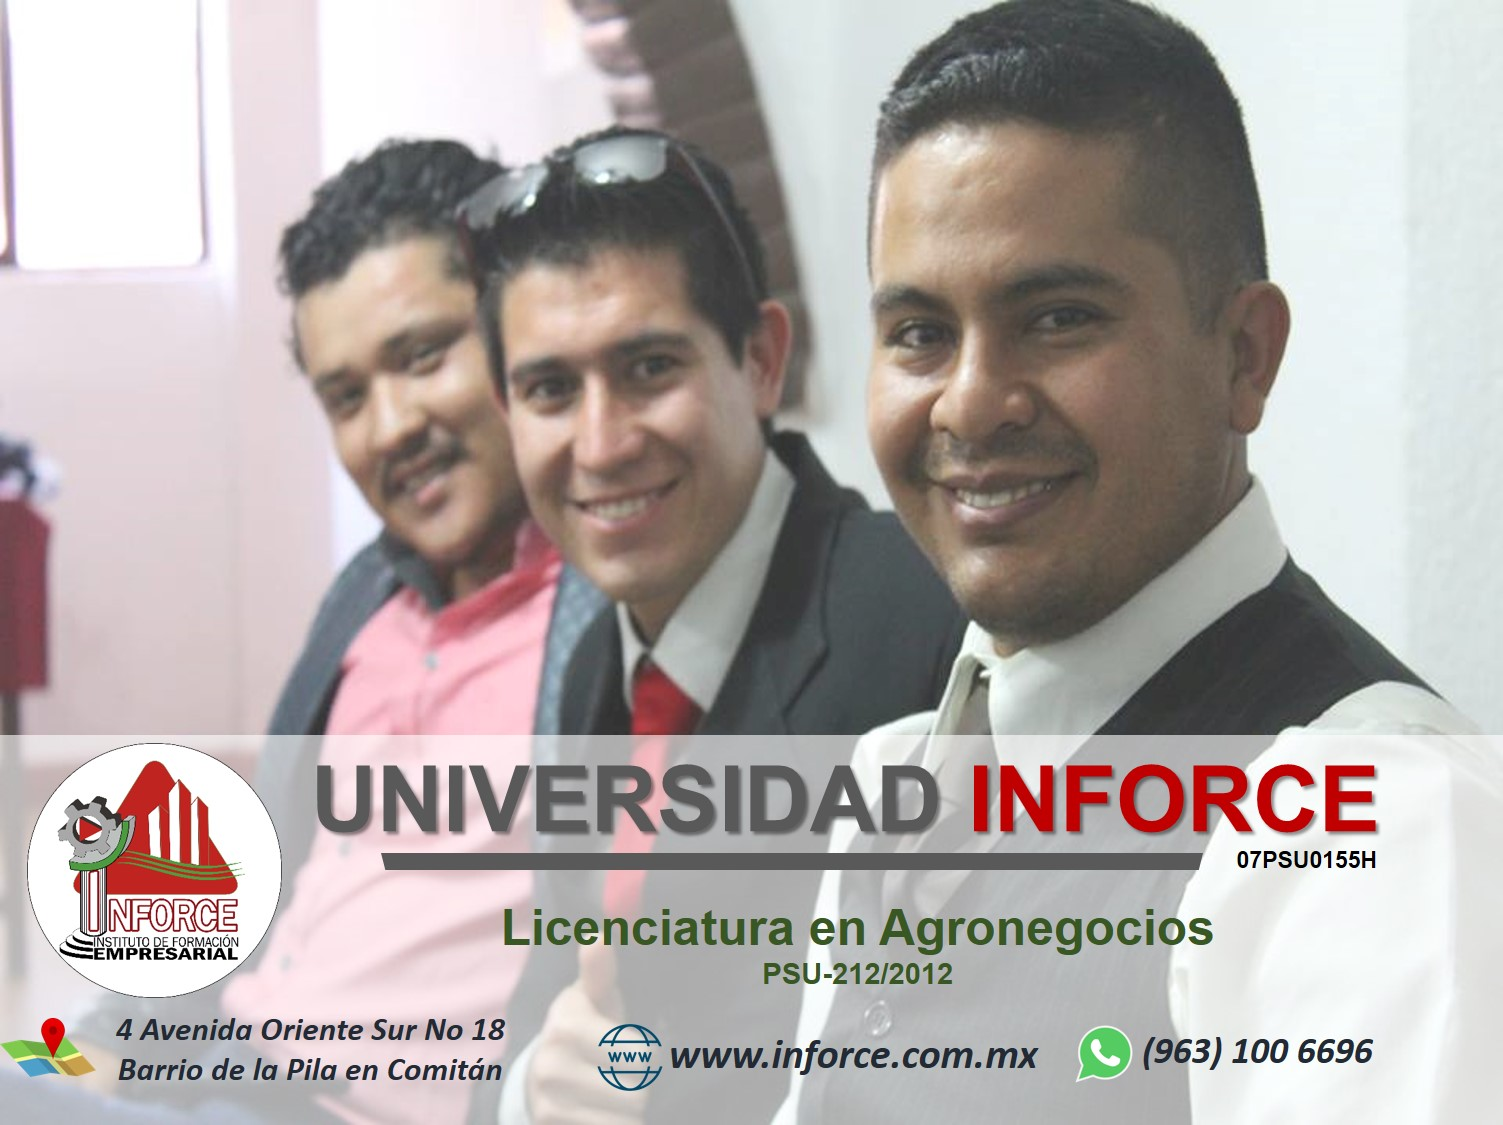 universida-inforce-comitan-instituto-de-formacion-empresarial-001.jpg